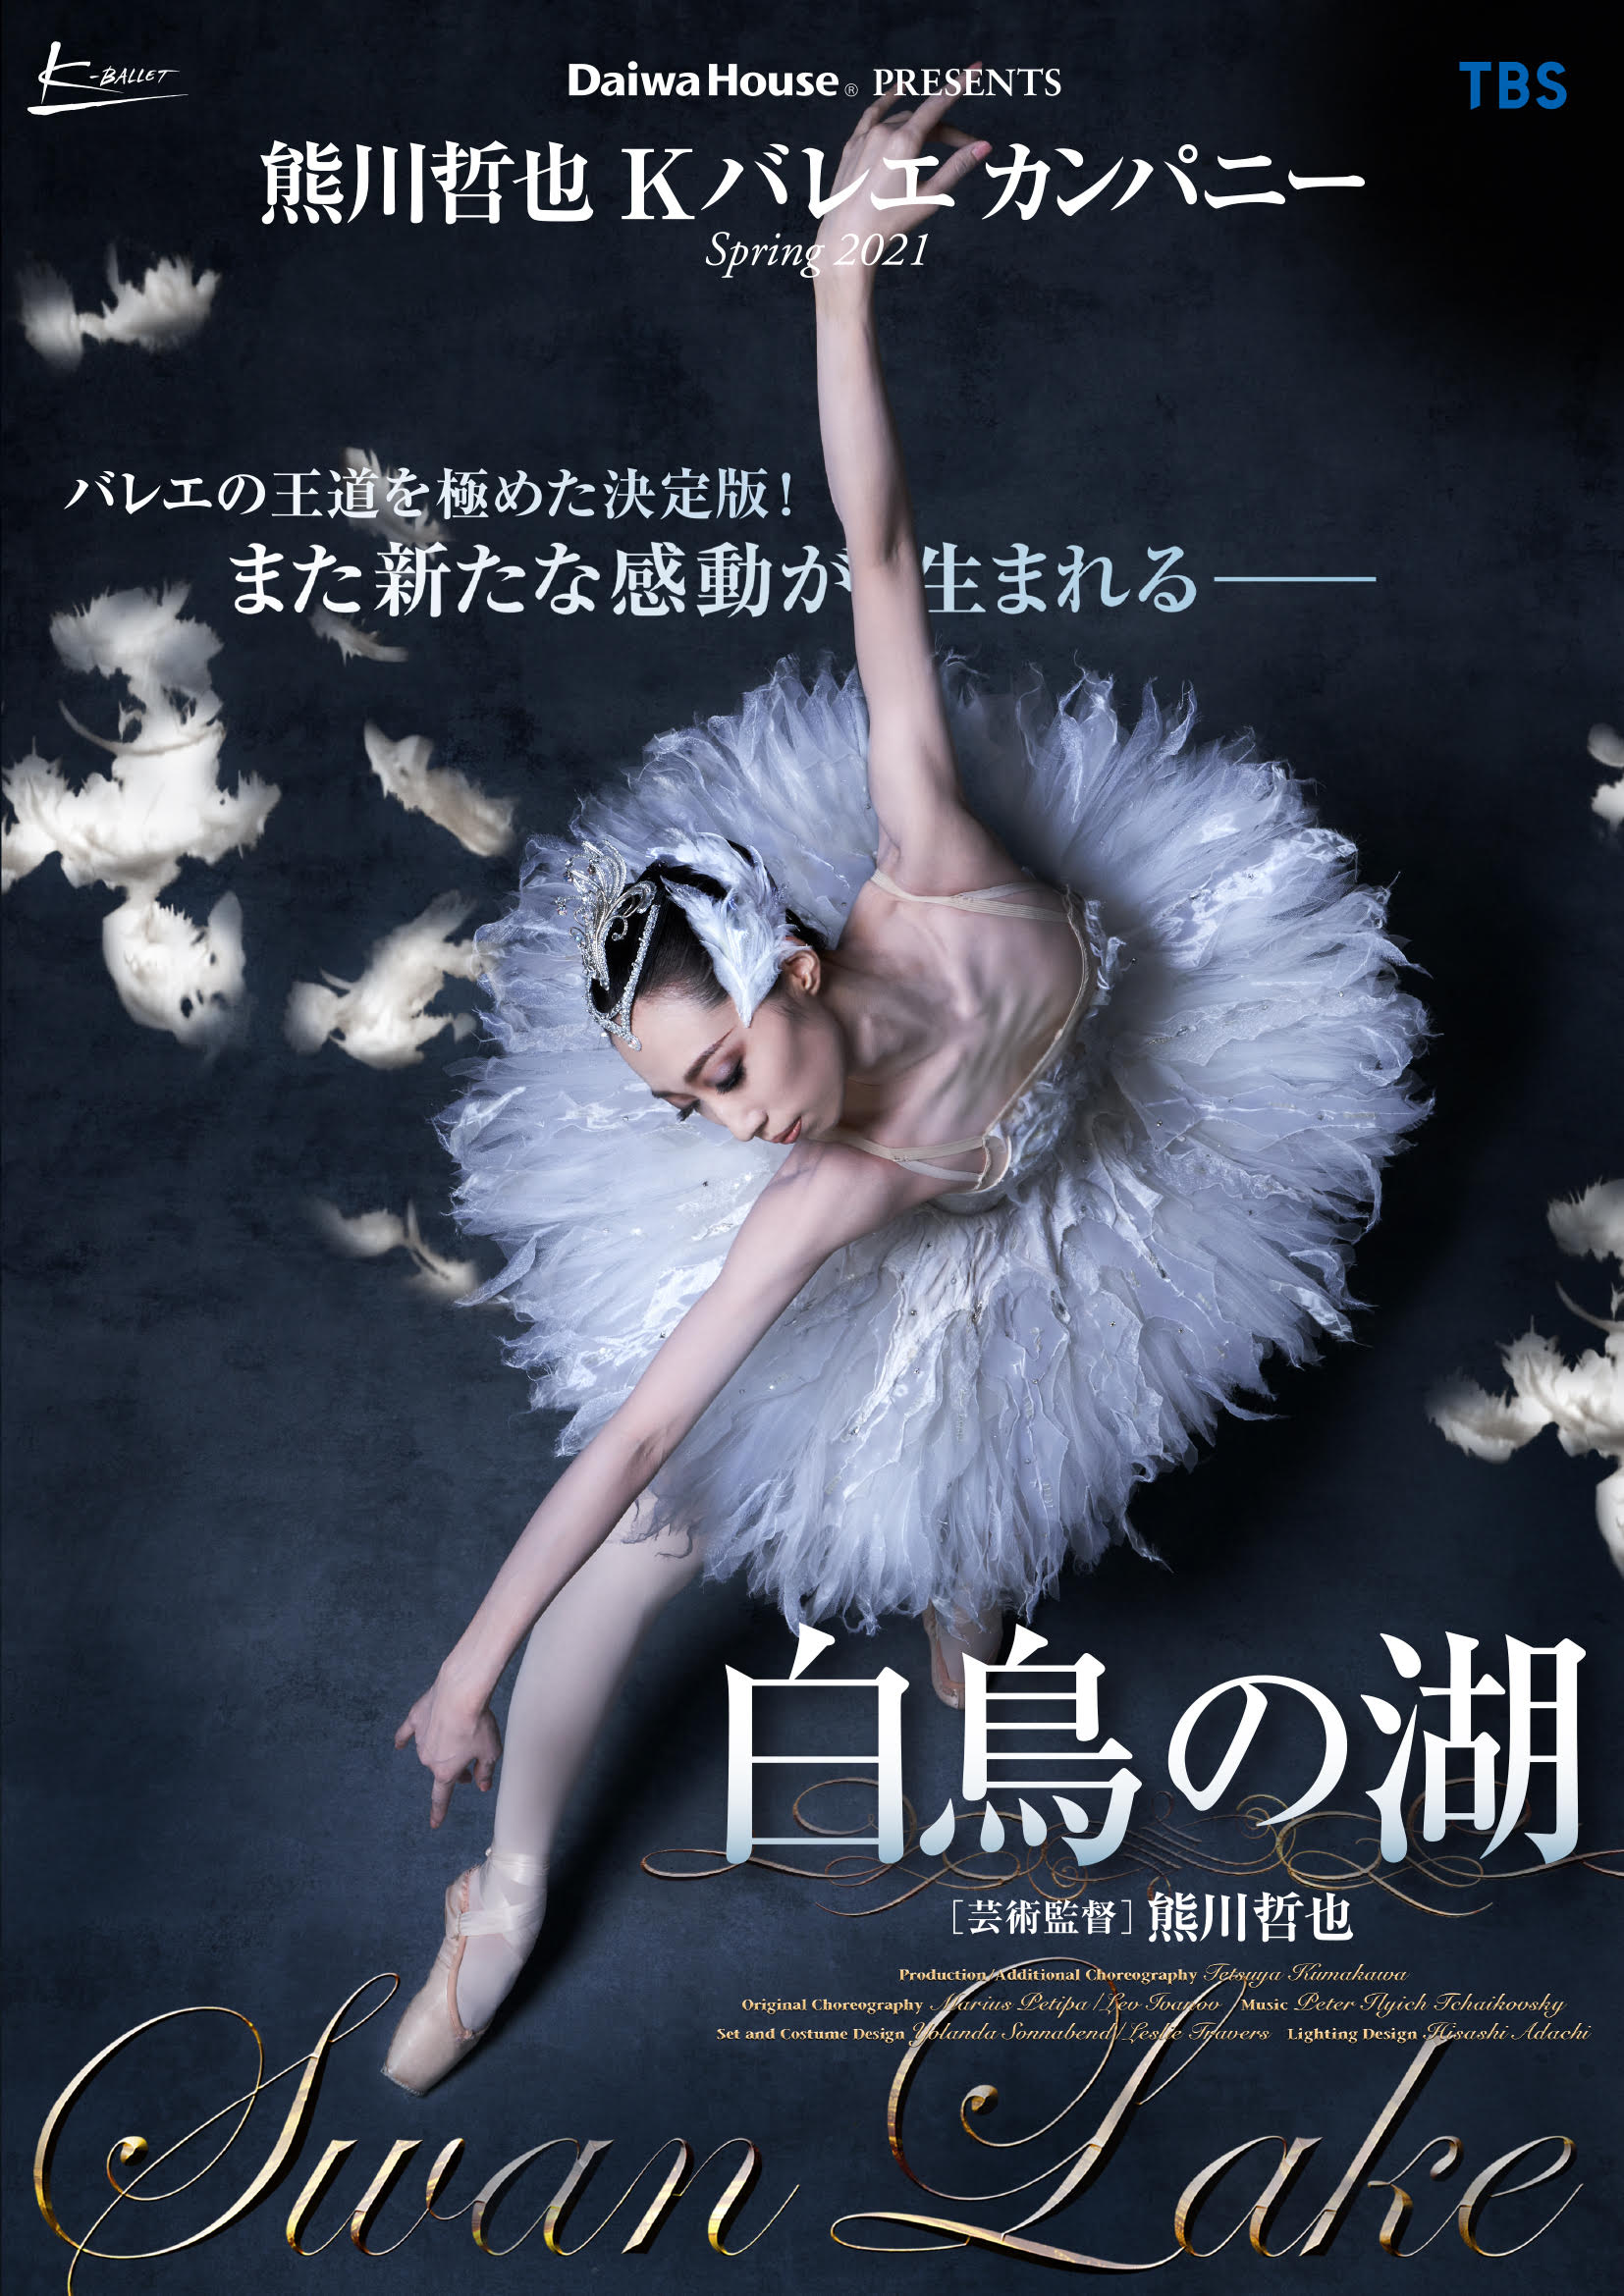 [Streaming+] Daiwa House PRESENTS Tetsuya Kumakawa K-BALLET COMPANY SPRING 2021「Swan Lake」